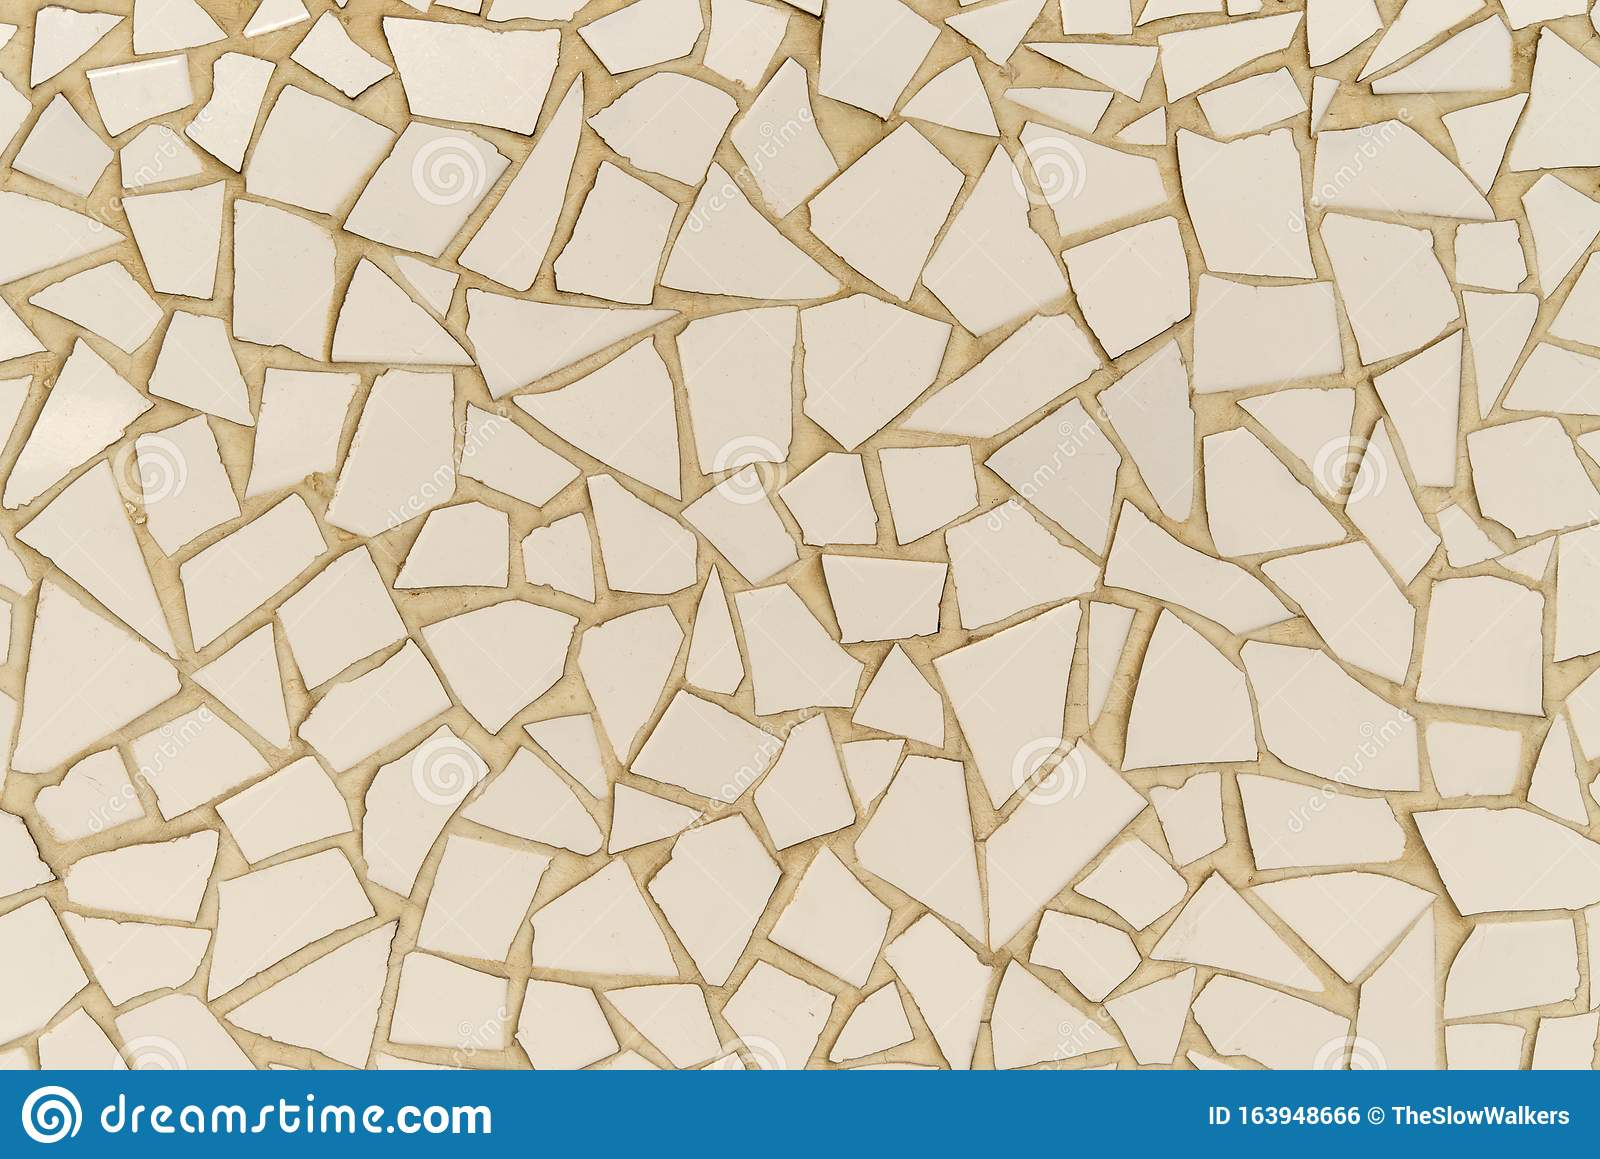 https www dreamstime com pieces ceramic tiles randomly set mortar abstract design plain mosaic pieces abstract background image163948666